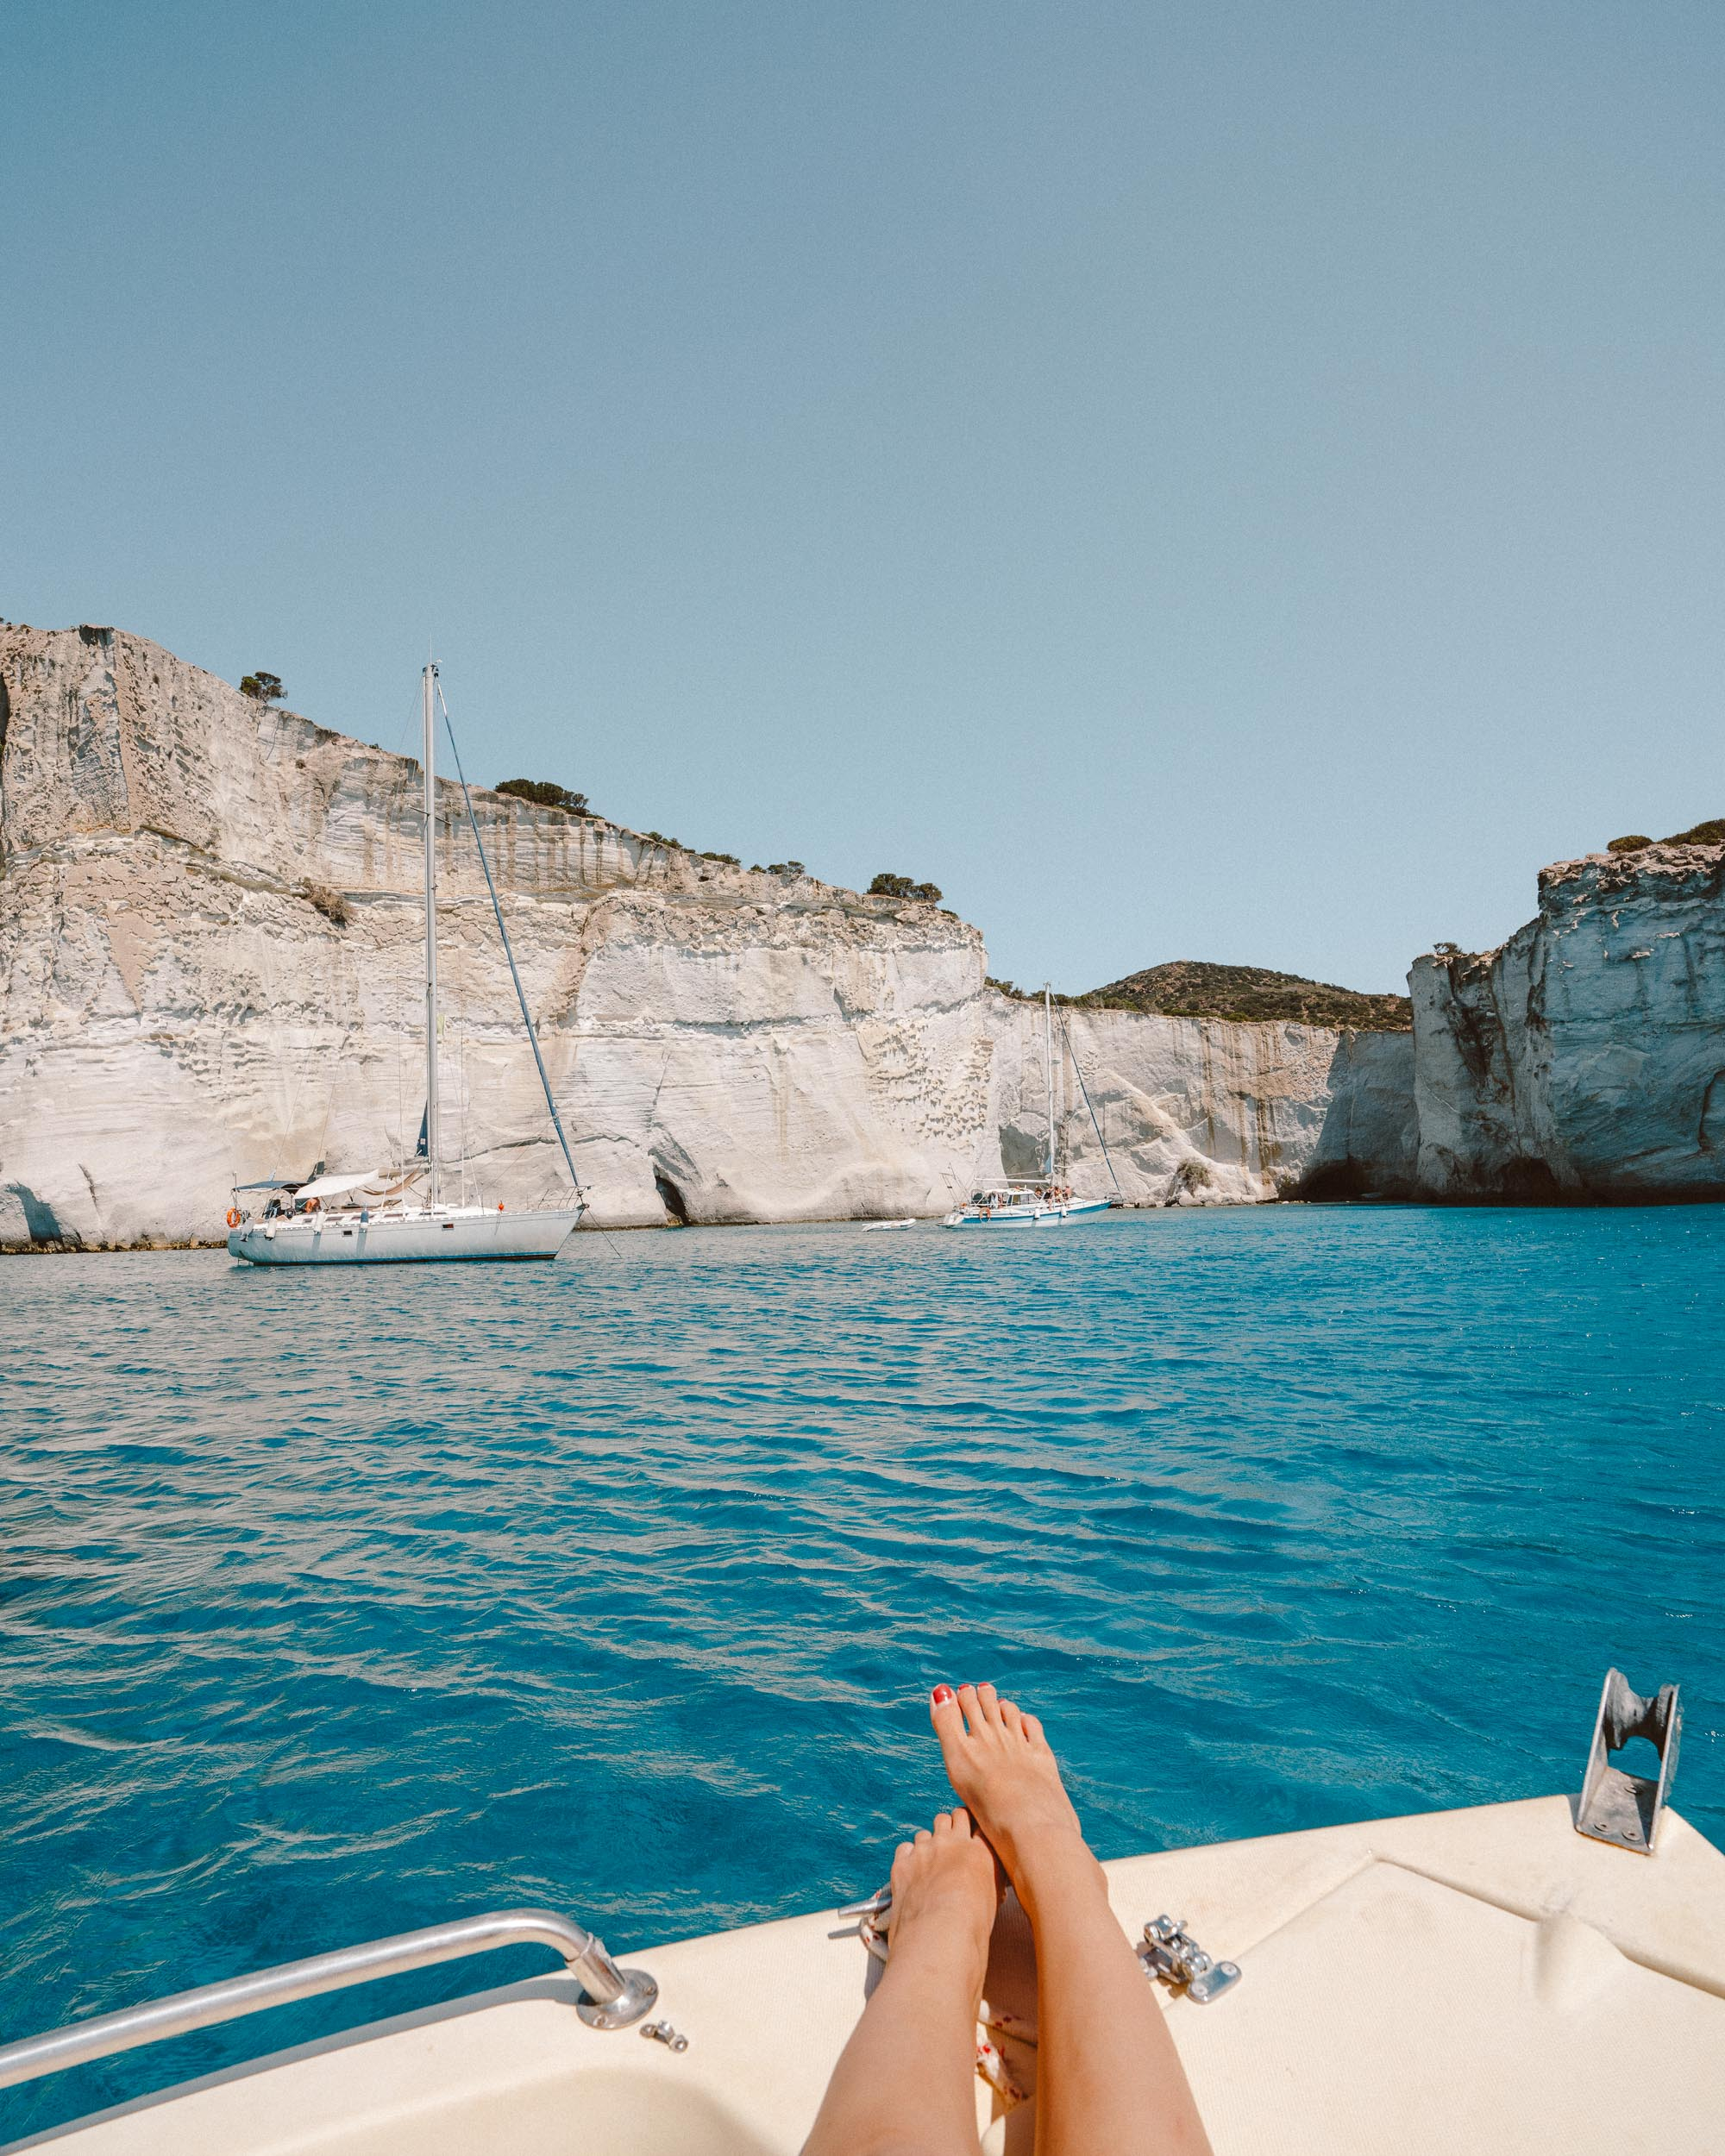 Boat day visiting Kleftiko in Milos Greece via @finduslost